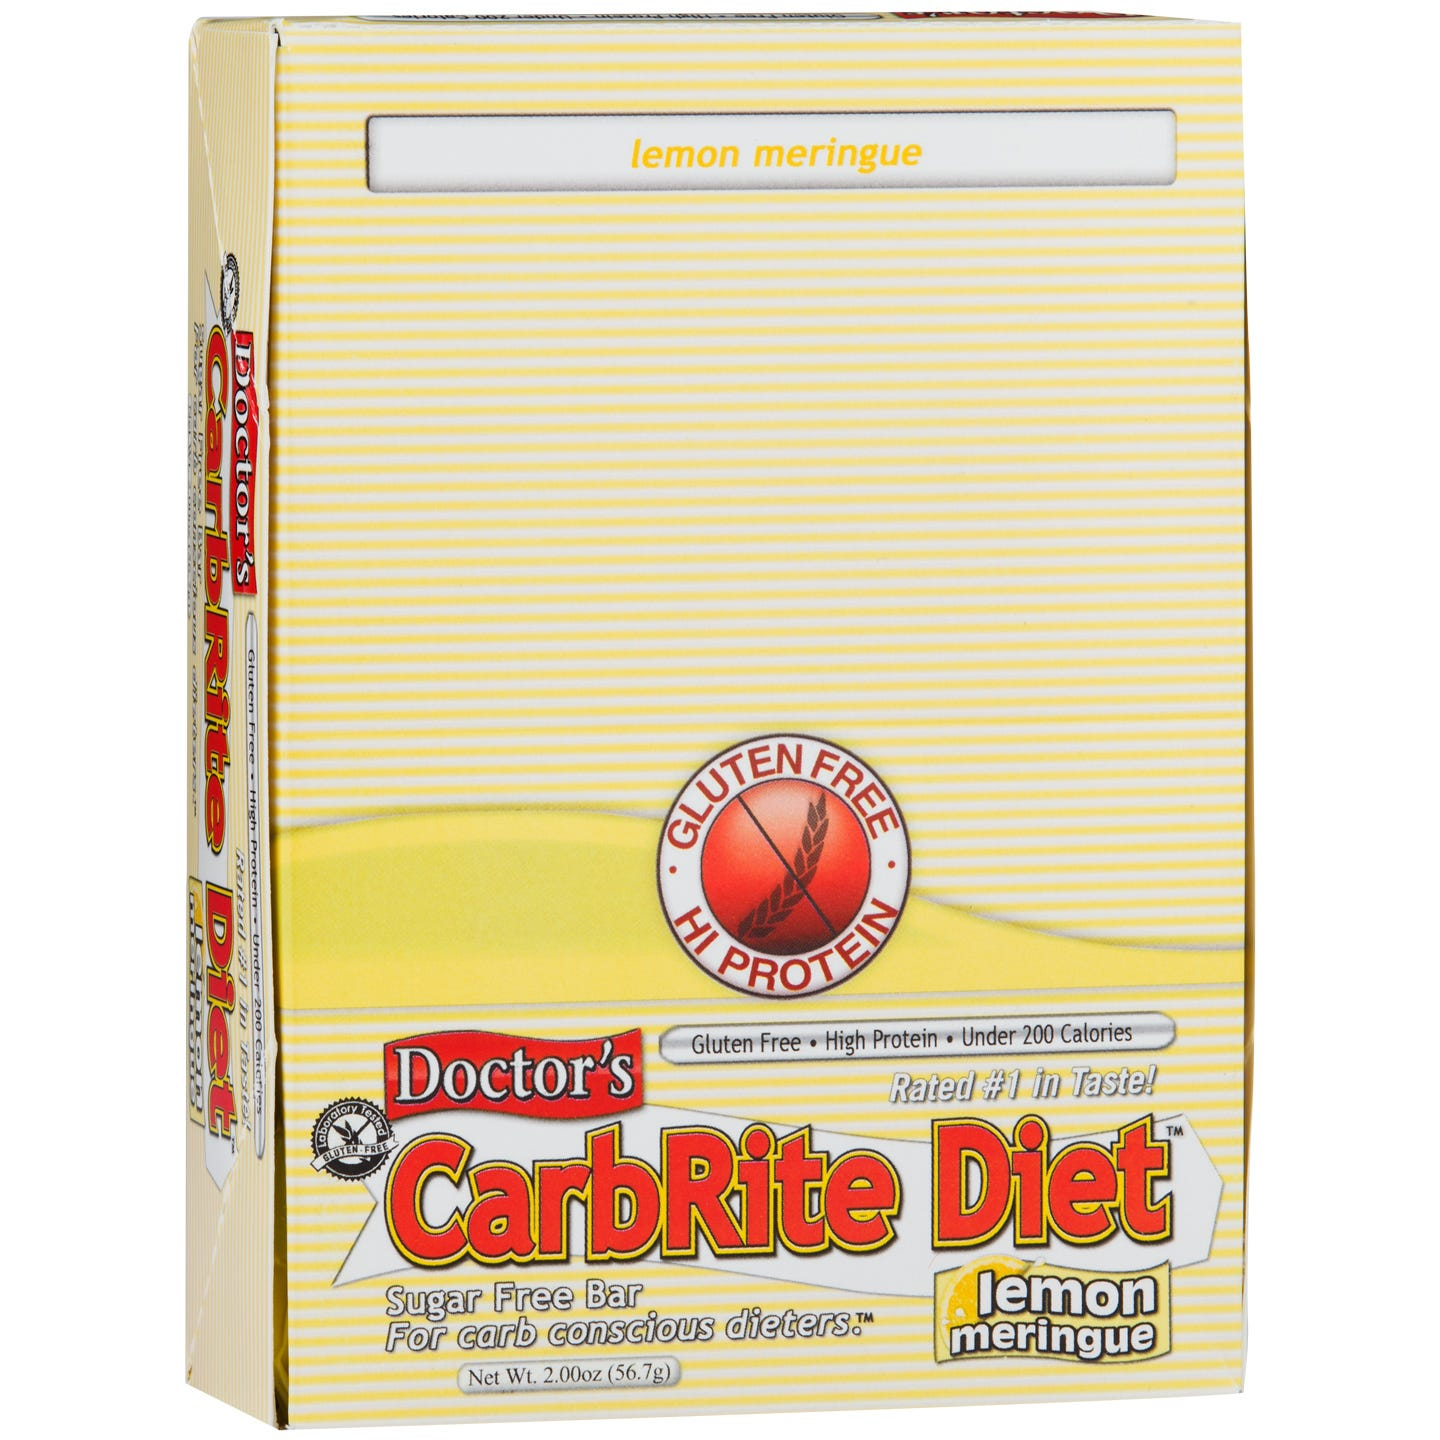 Protein Bars Lemon Meringue (12 ct) - Doctor's CarbRite Diet - Rapid Diet Weight Loss Products Shop